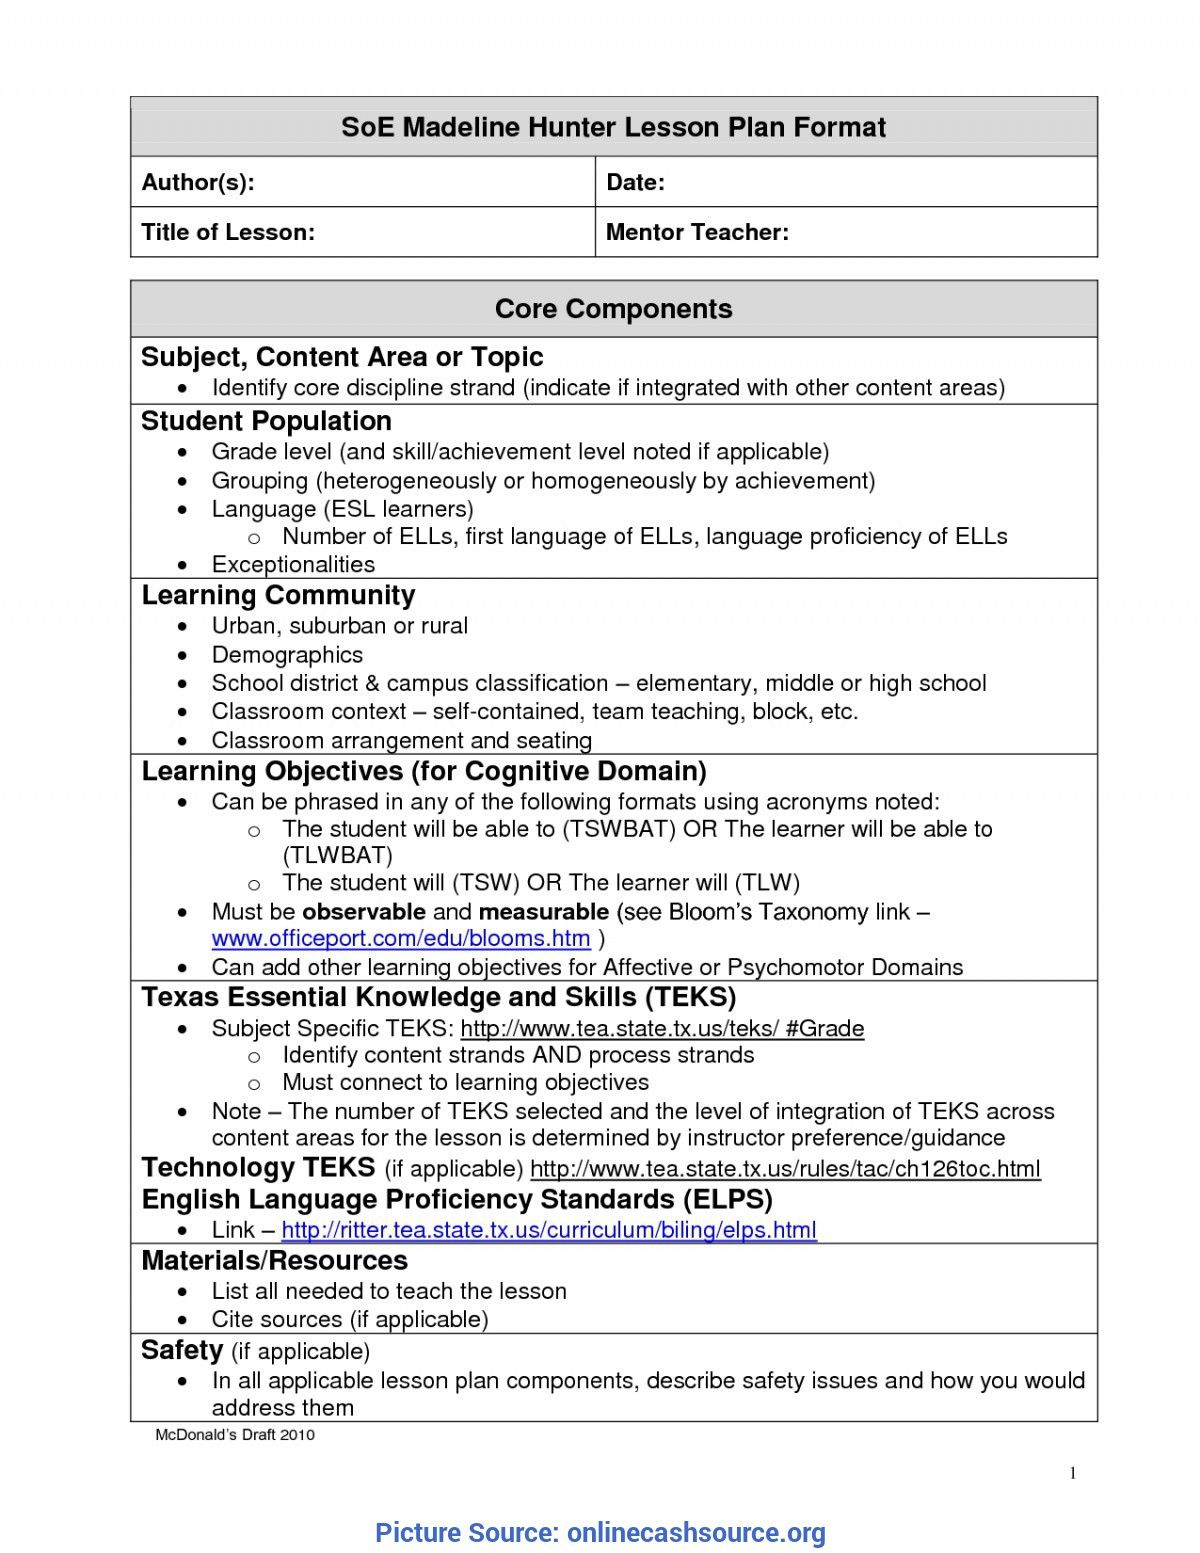 Madeline Hunter Lesson Plan Template Word Colona Rsd7 Intended For Madeline Hunter L Madeline Hunter Lesson Plan Lesson Plan Templates Printable Lesson Plans